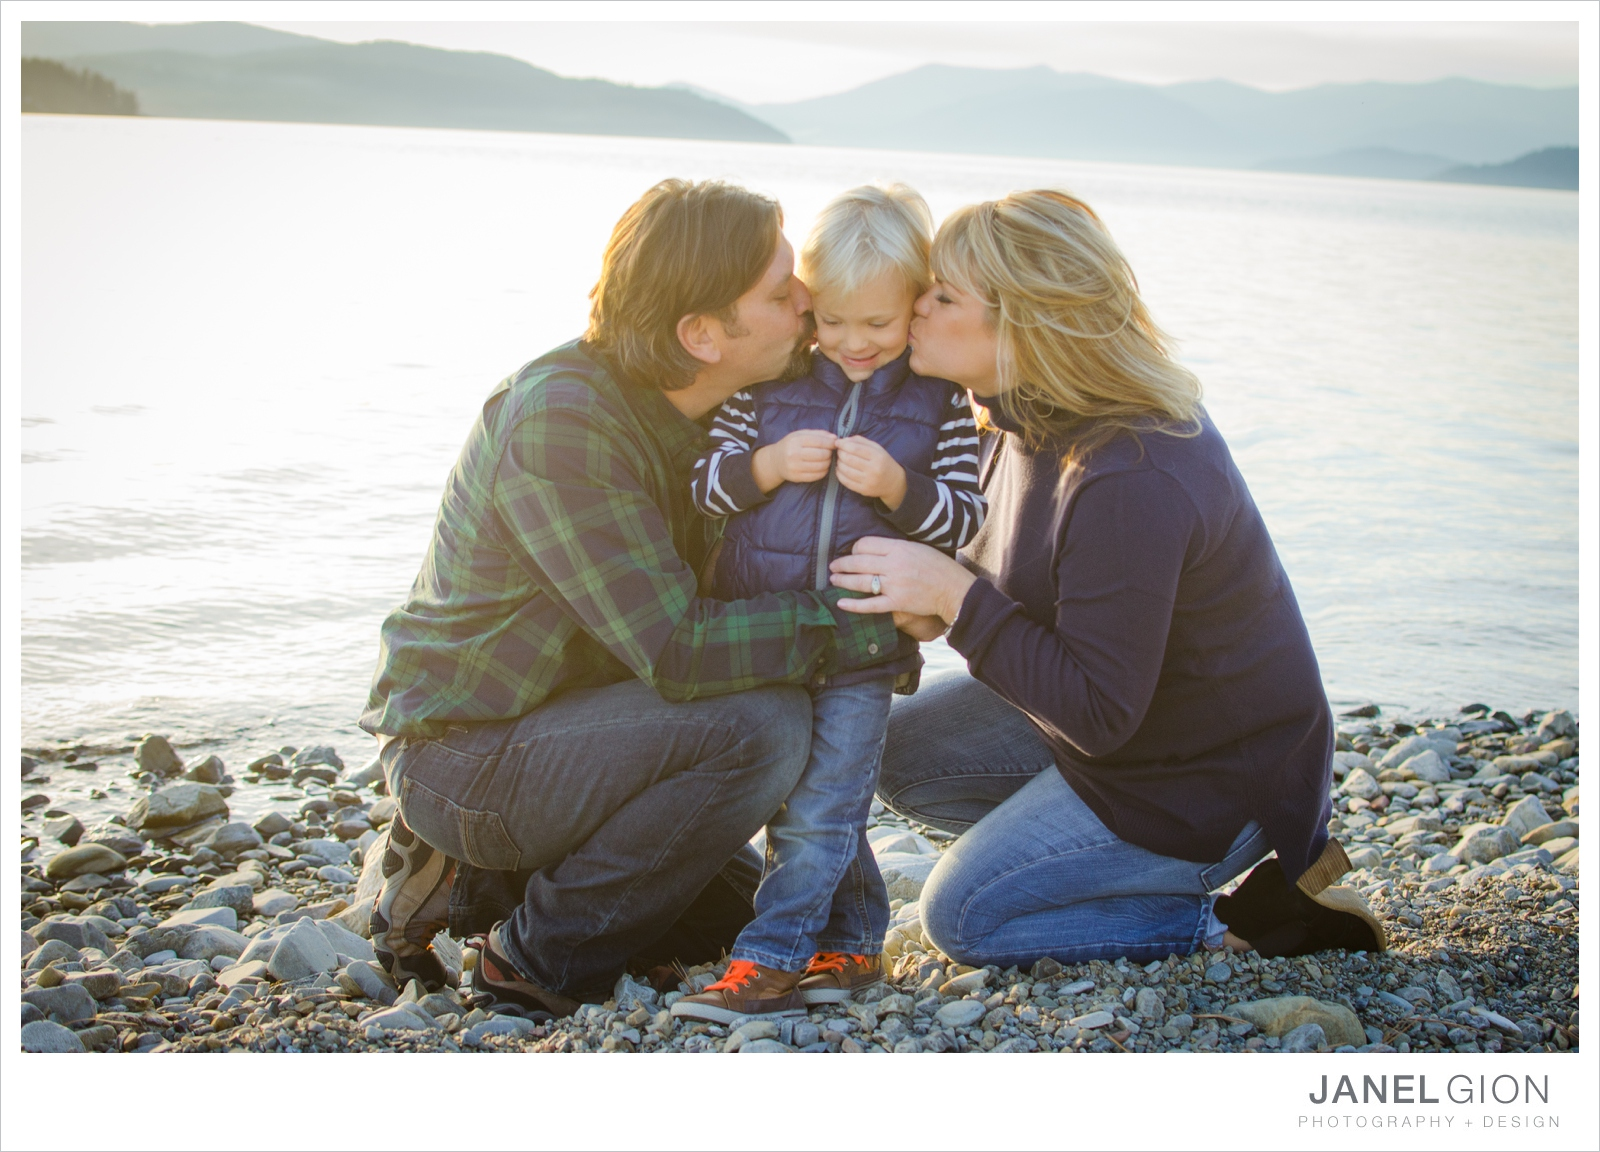 North-Idaho-Family-Children-Photographer-Year-in-Review-Contest-2013-Lifestyle-Family-Portraits-by-Janel-Gion-Photography_0041.jpg